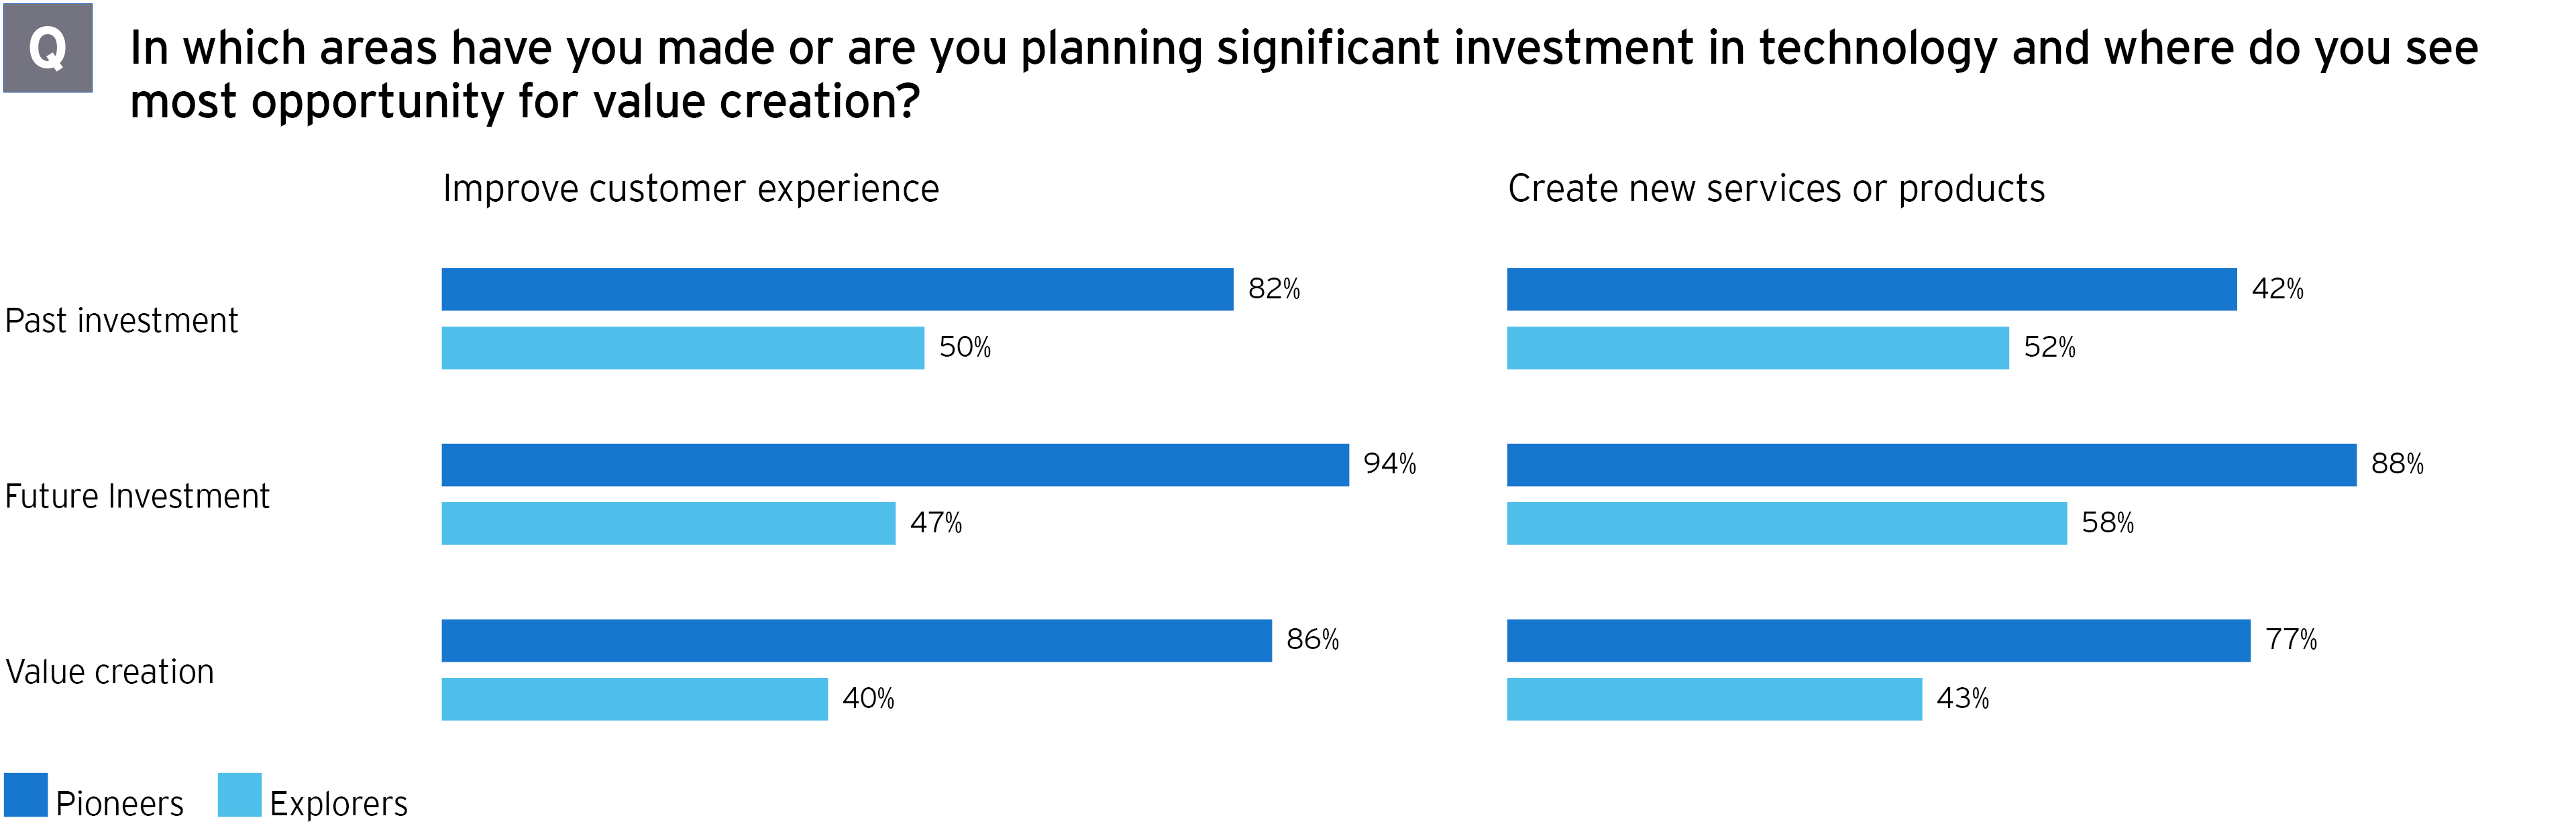 M&A survey areas of significant investment in technology